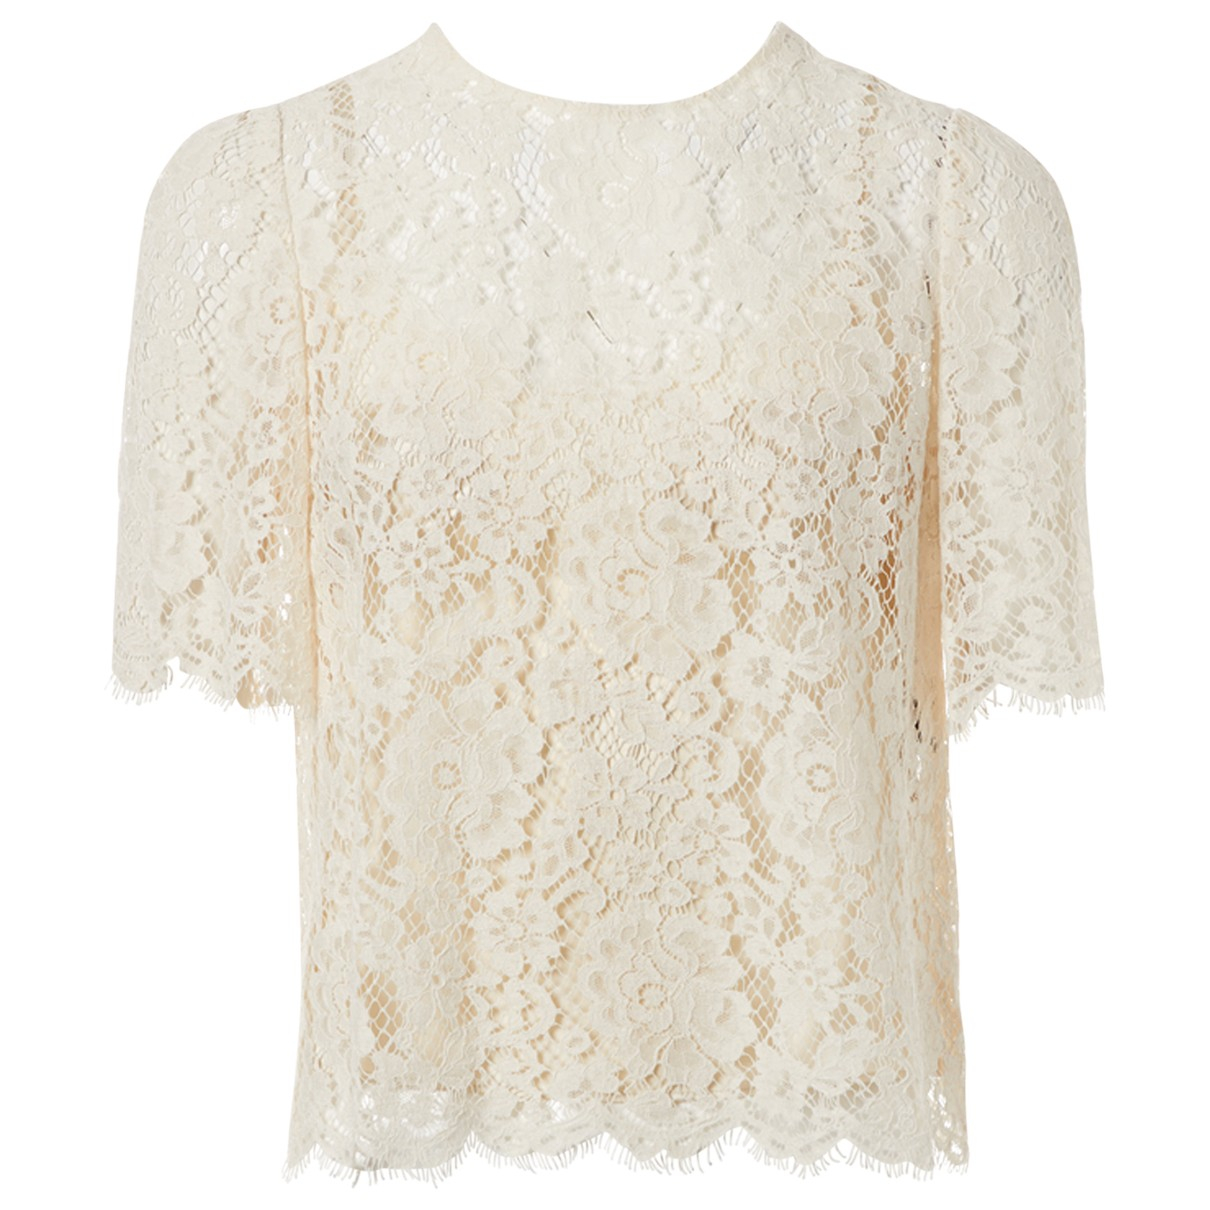 Dolce & Gabbana \N Ecru Cotton  top for Women 40 IT